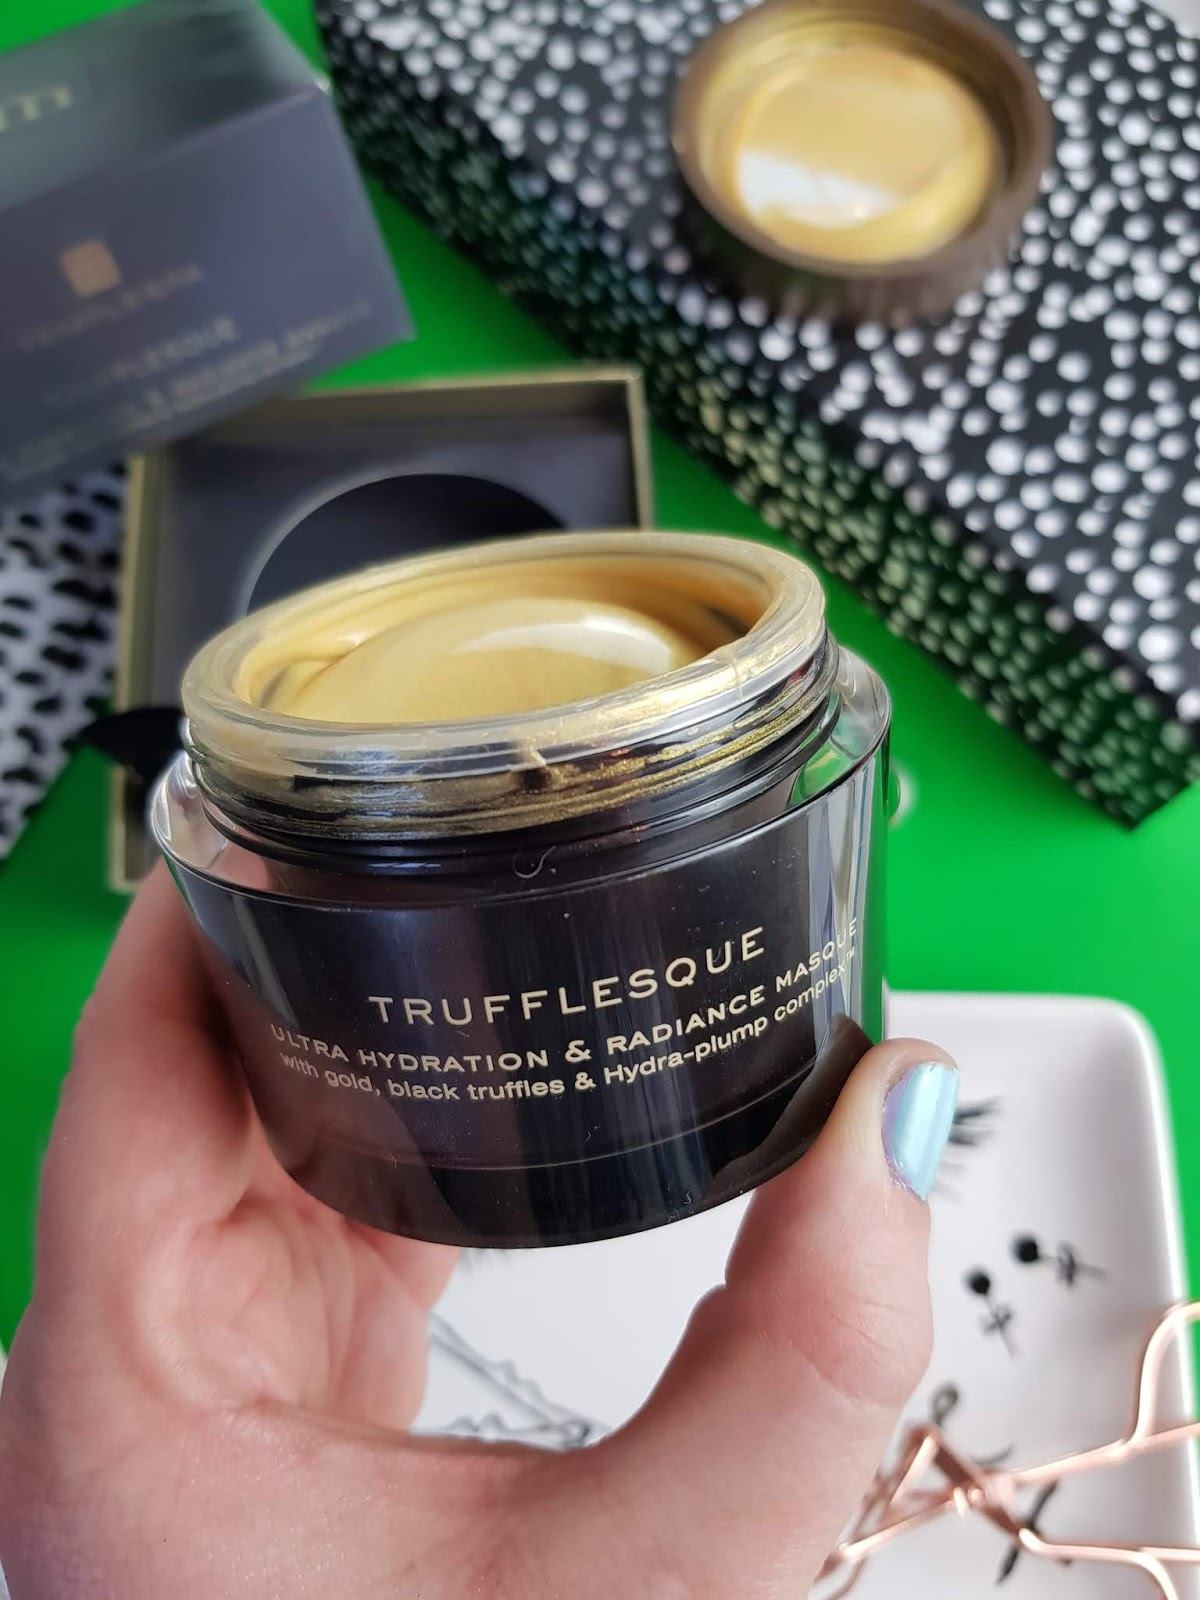 Temple Spa Trufflesque Gold Mask